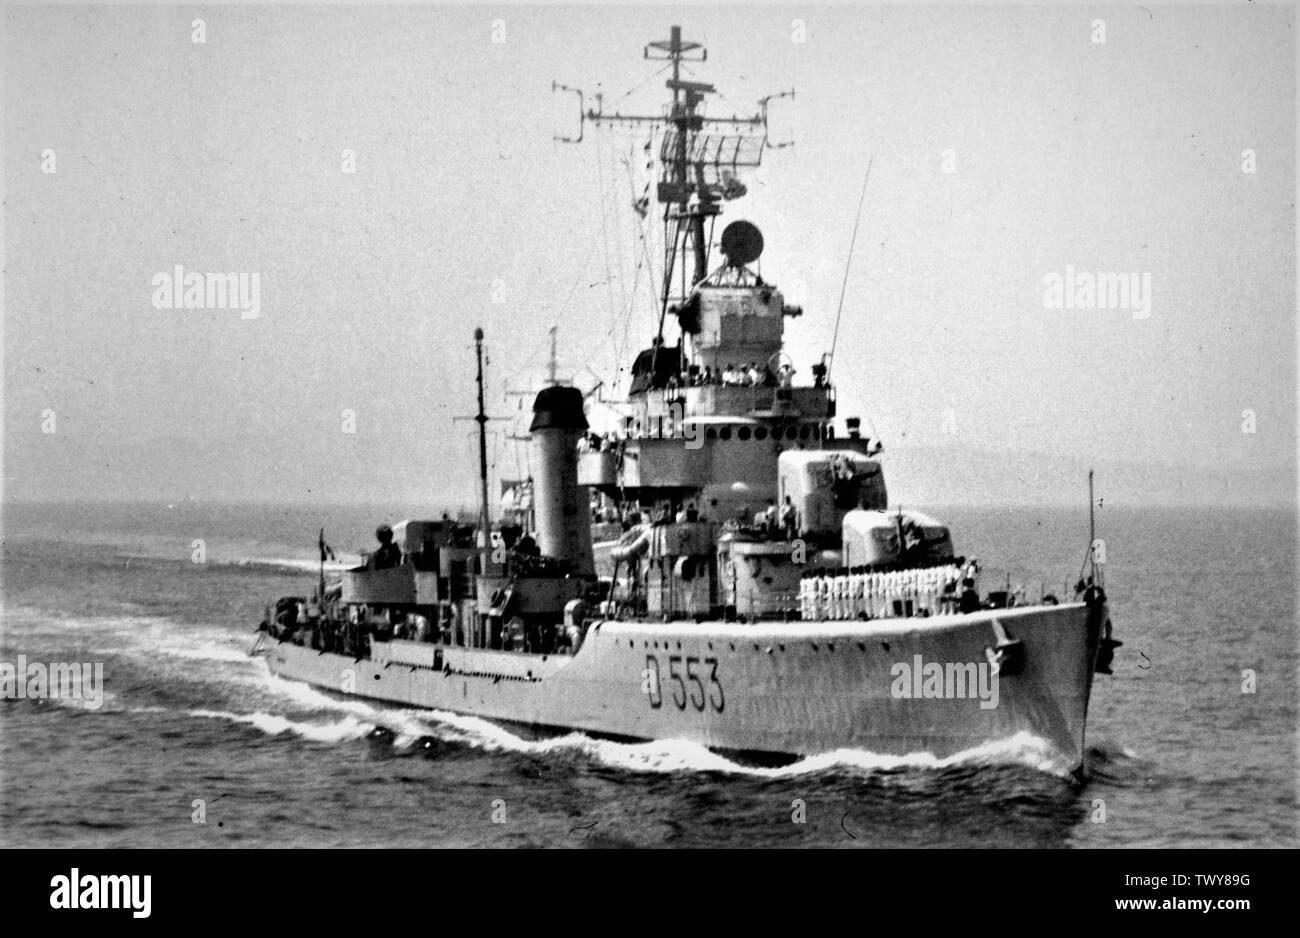 'The destroyer Artigliere (D 553) in navigation.; Unknown dateUnknown date; it.Wikipedia; unattributed; ' - Stock Image